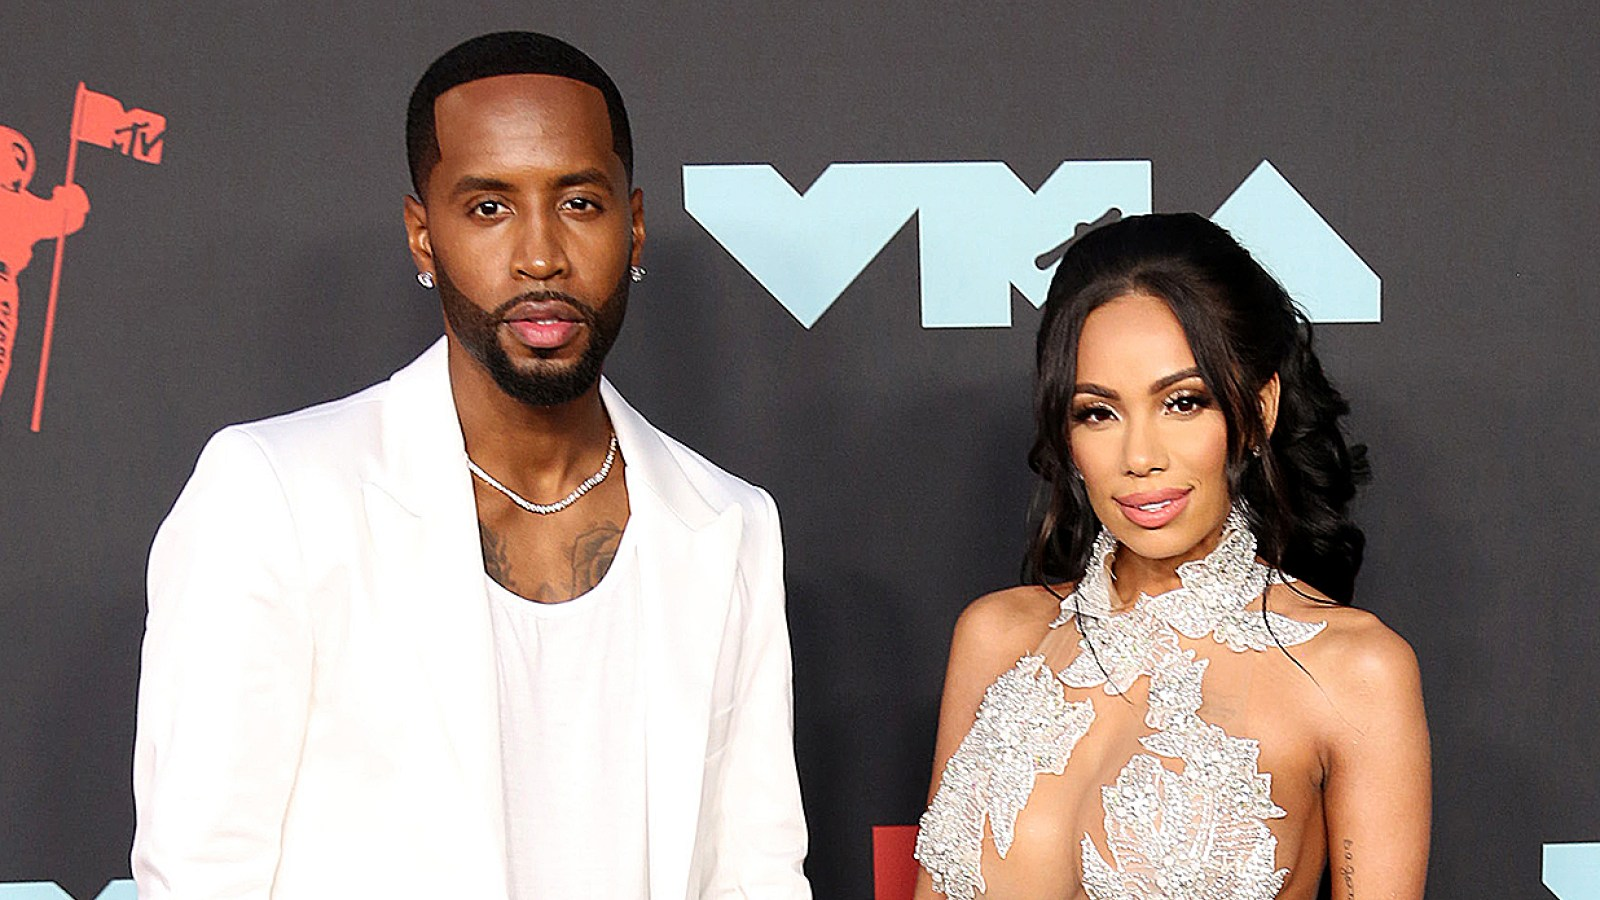 """erica-mena-and-safaree-share-the-most-romantic-advice-with-their-fans-inspired-by-the-movie-the-photograph"""